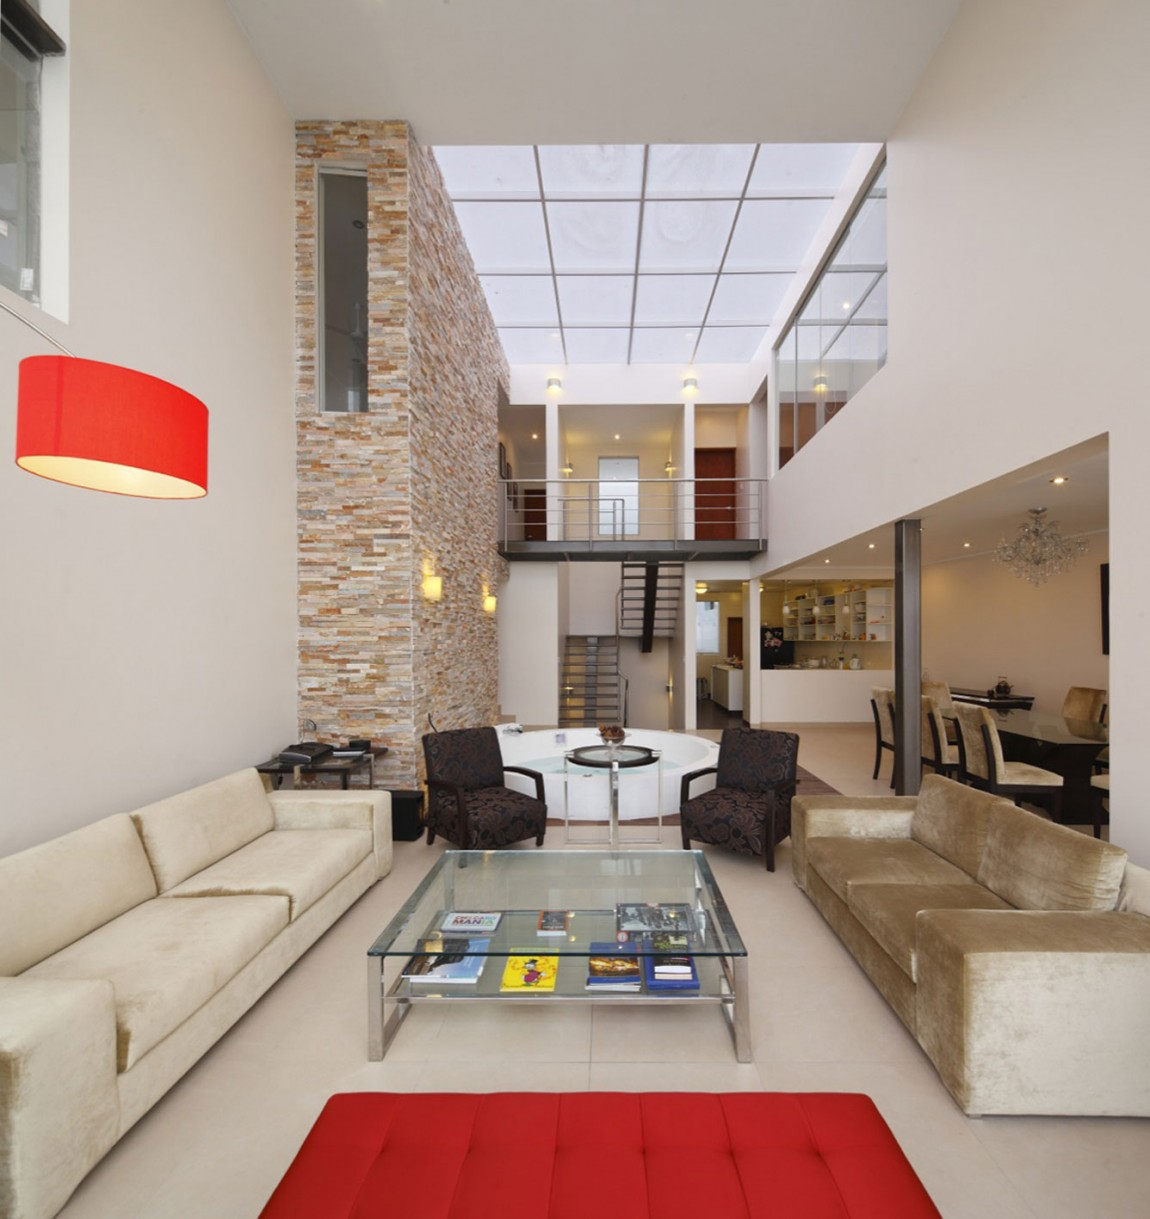 13 Superb Modern Living Room With Pool Ideas That Will: Exquisite Modern Beach House In Lima: The Cristal House